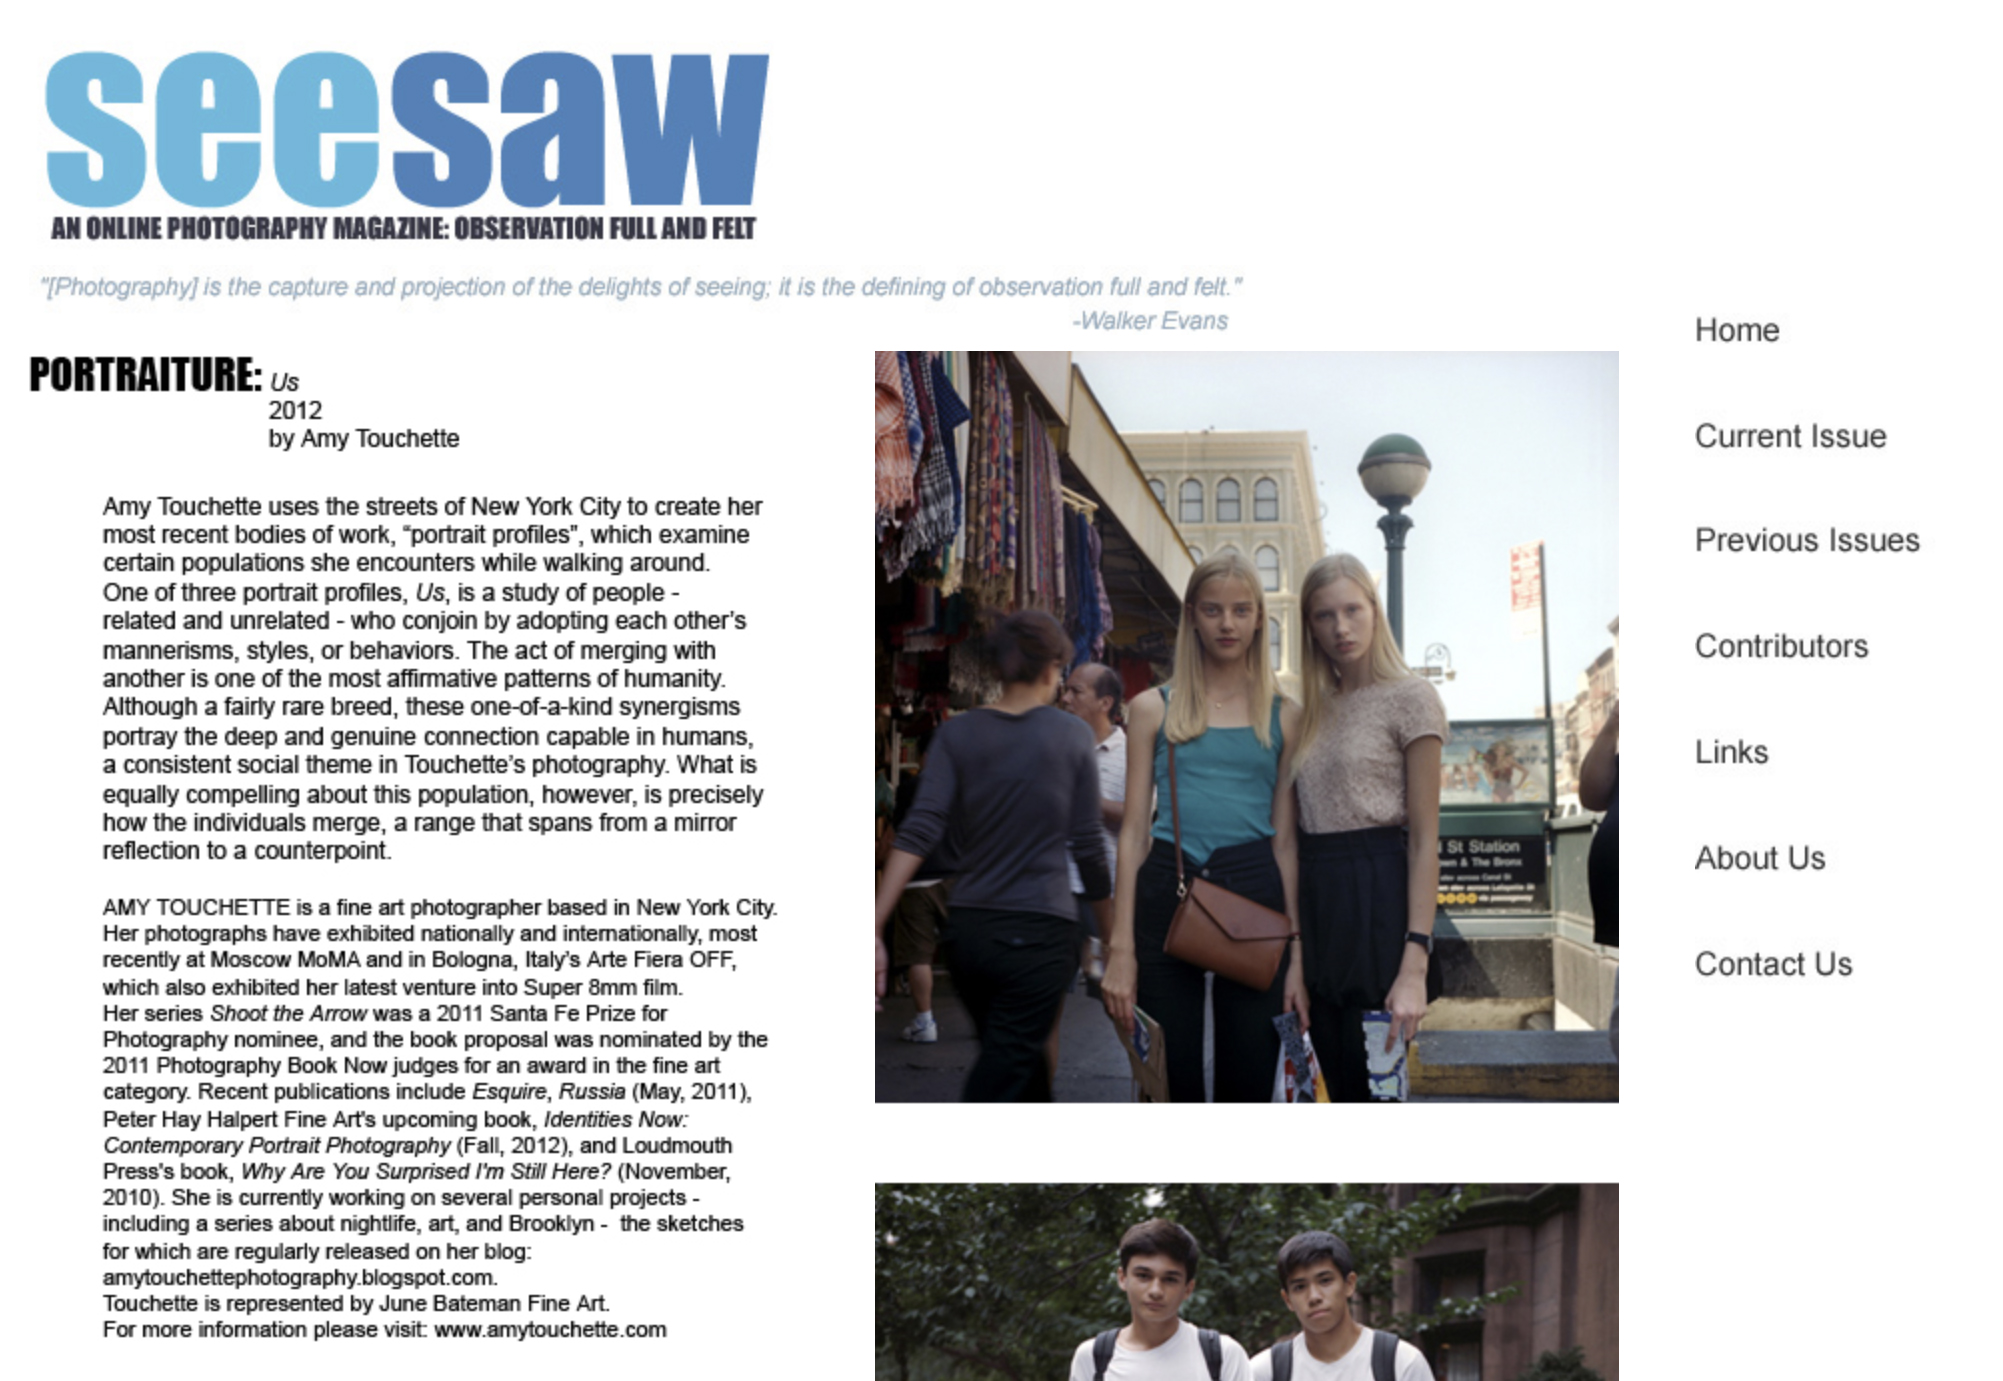 SeeSaw Magazine,Us - APRIL 2012 Established in 2004, SeeSaw is an online photography magazine created by Aaron Schuman that's dedicated to work that successfully captures, represents, and encourages acute observation, via the photographic medium.